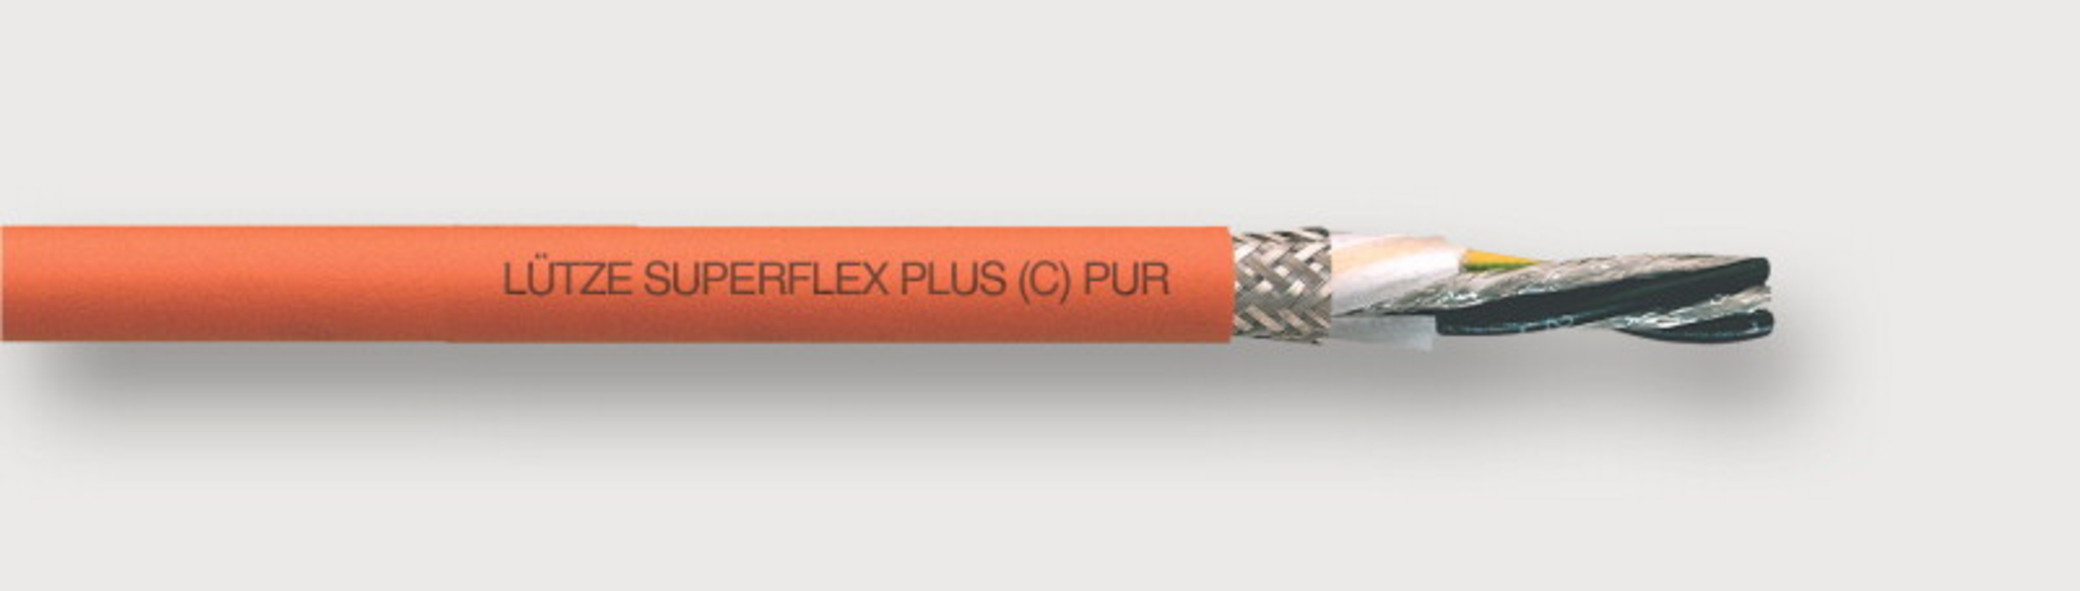 111460 - LÜTZE SUPERFLEX® PLUS M (C) PUR SERVO 0.6/1 kV High Flexing Motor Cable for Siemens and other systems For highest requirements